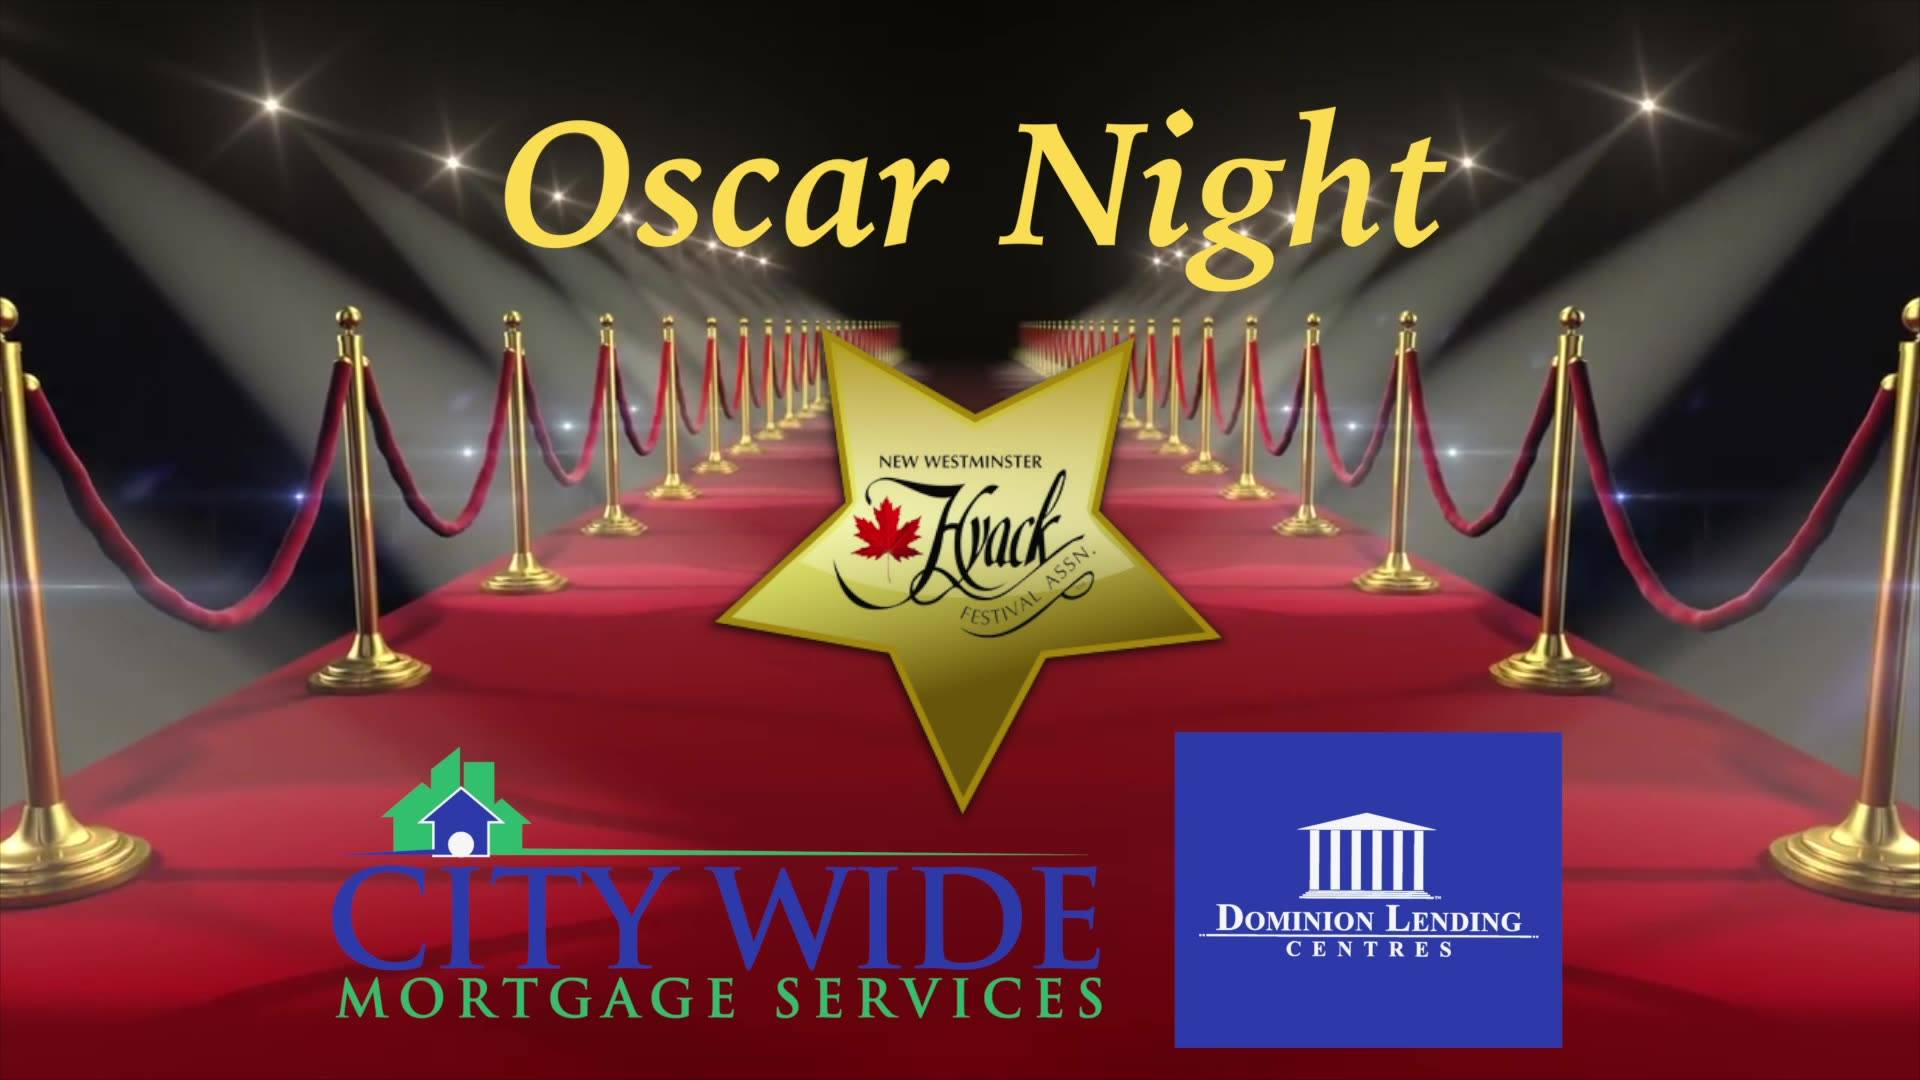 Big thanks to all our Oscar Night sponsors!